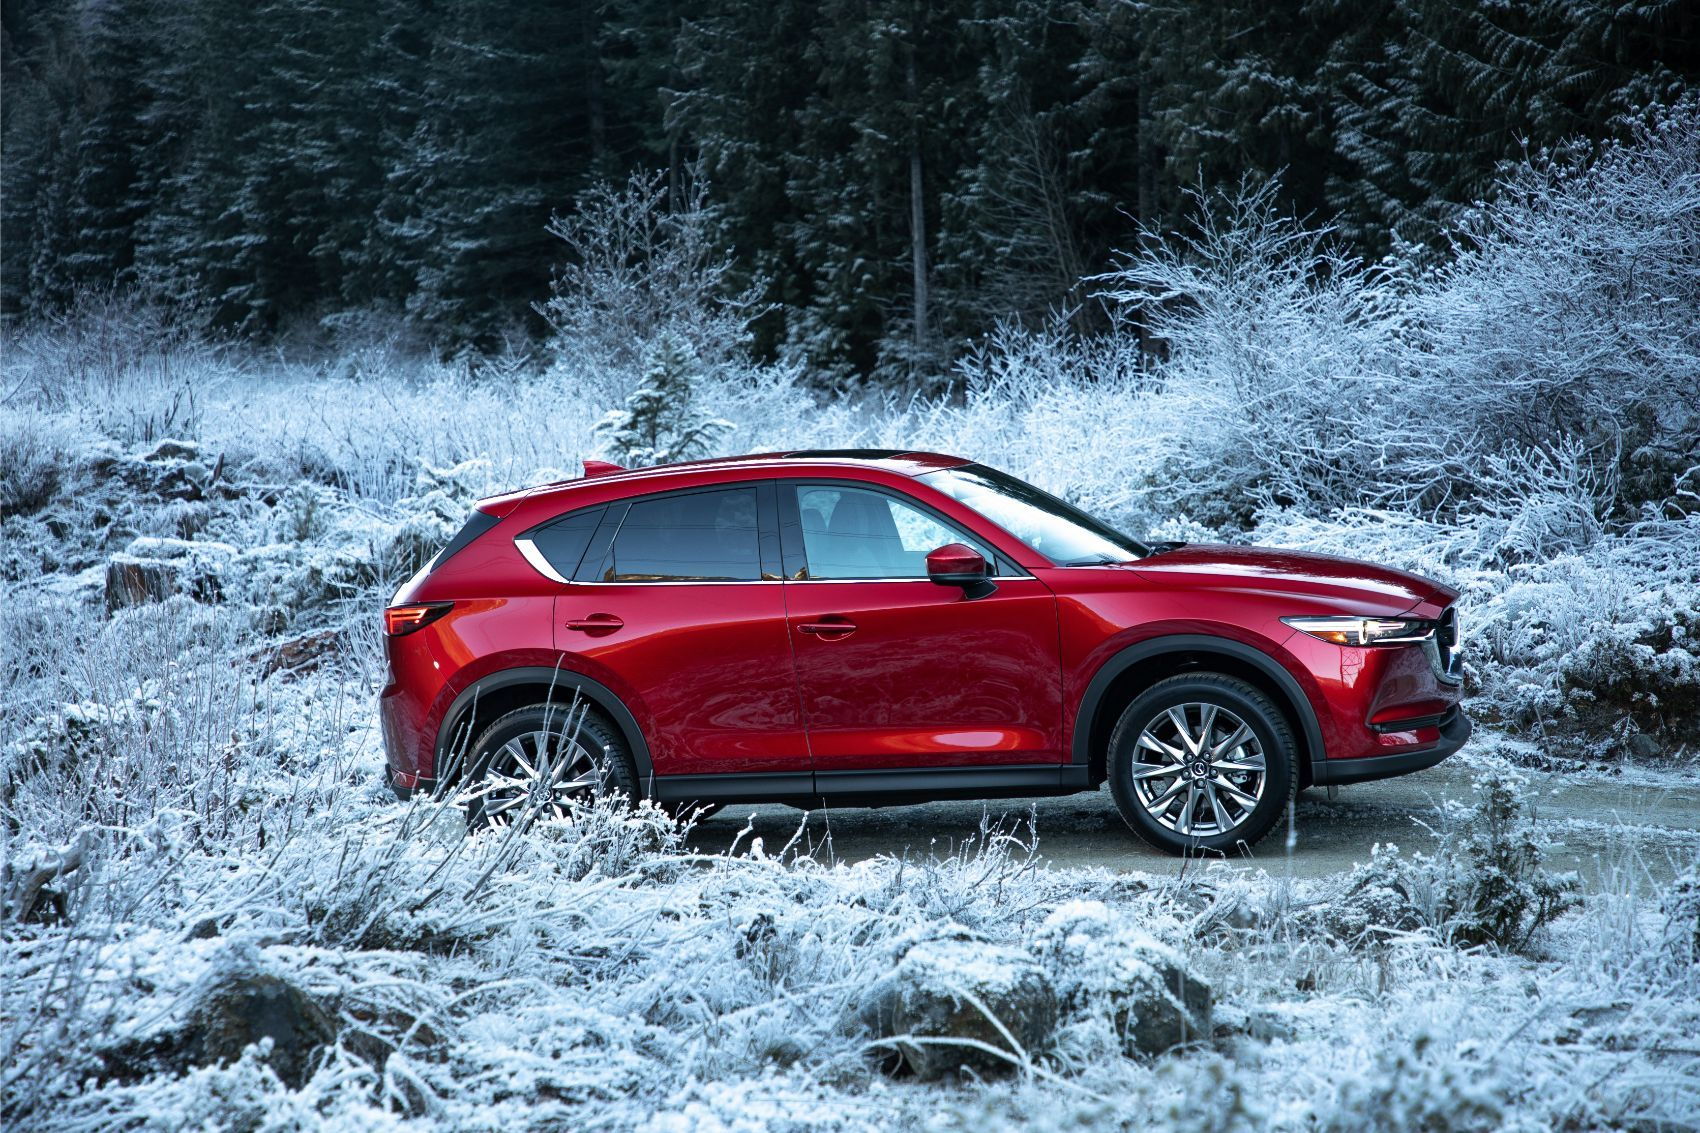 Extending your Mazda warranty can help protect your CX-5 or other Mazda vehicles.